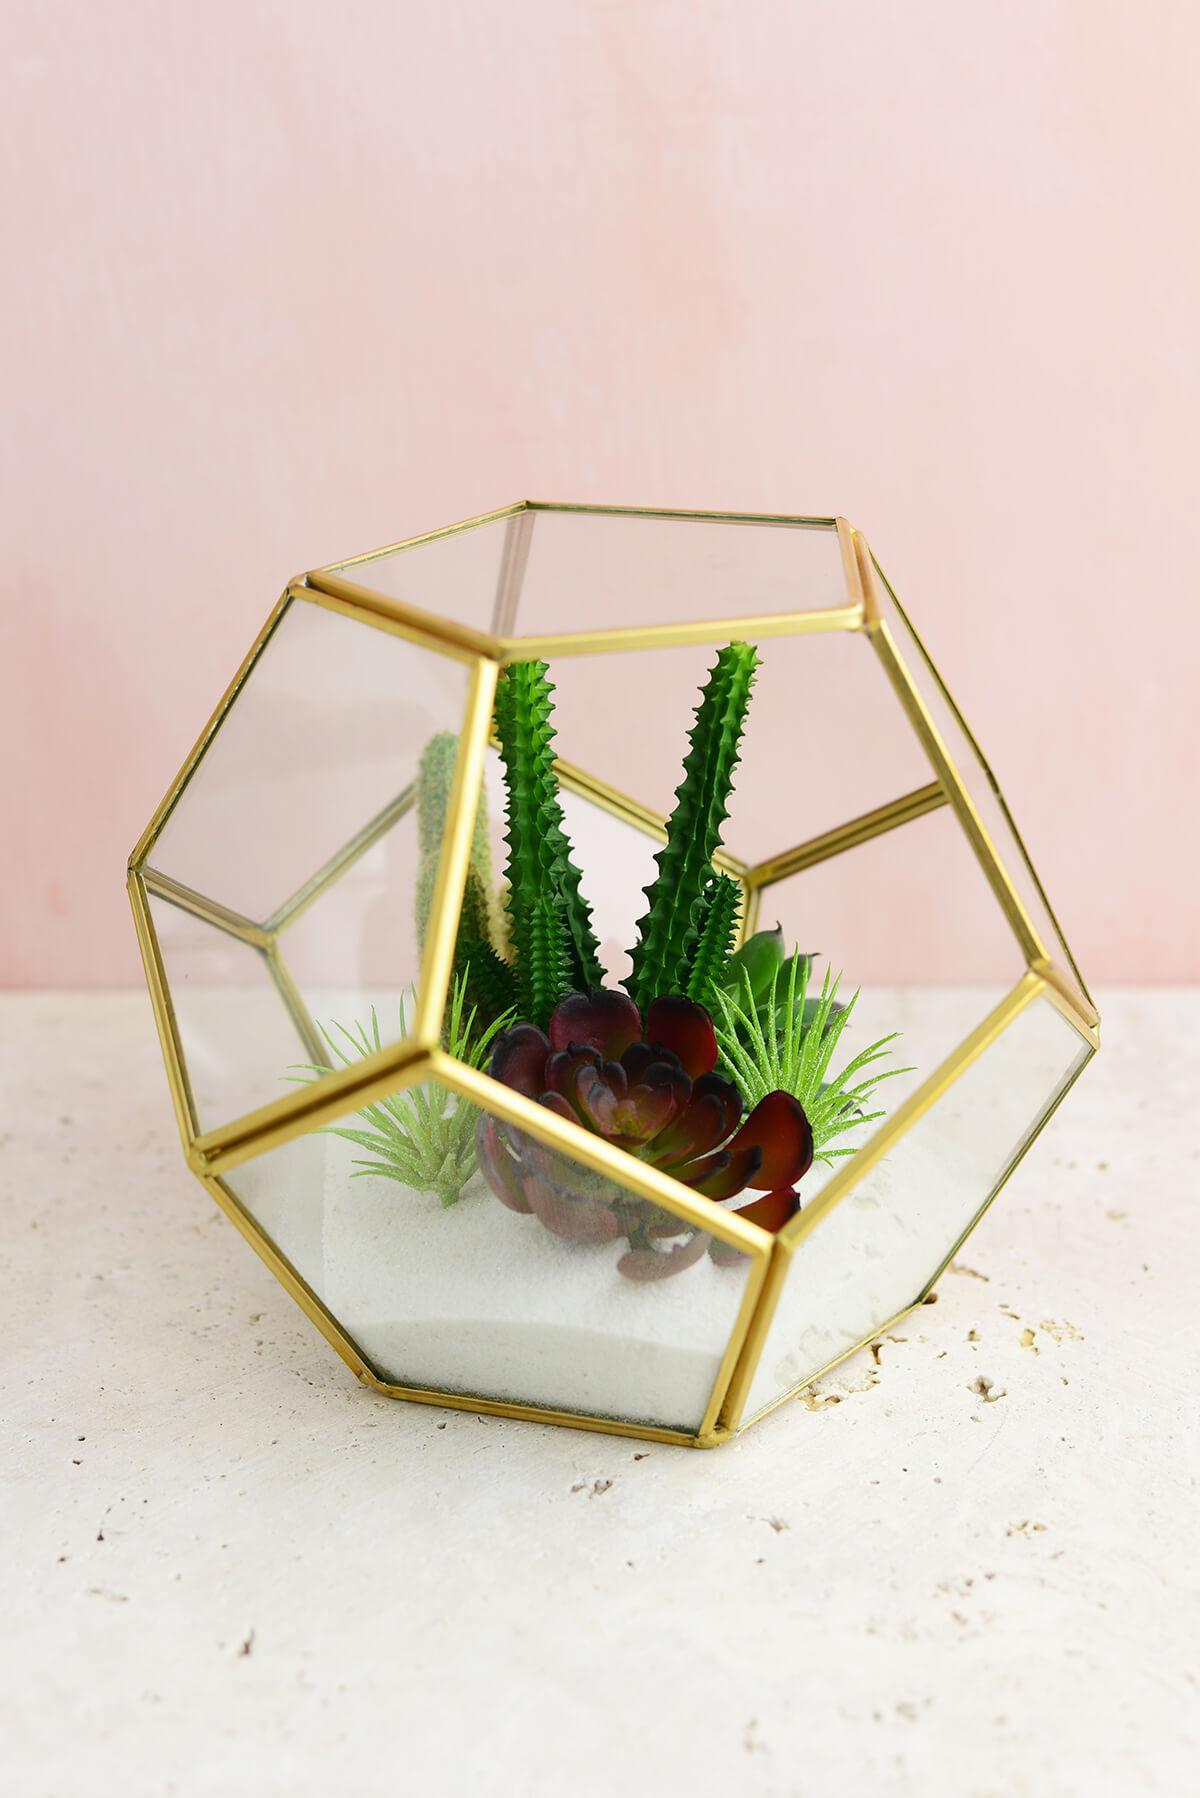 Hira Glass & Brass Terrarium Display Box